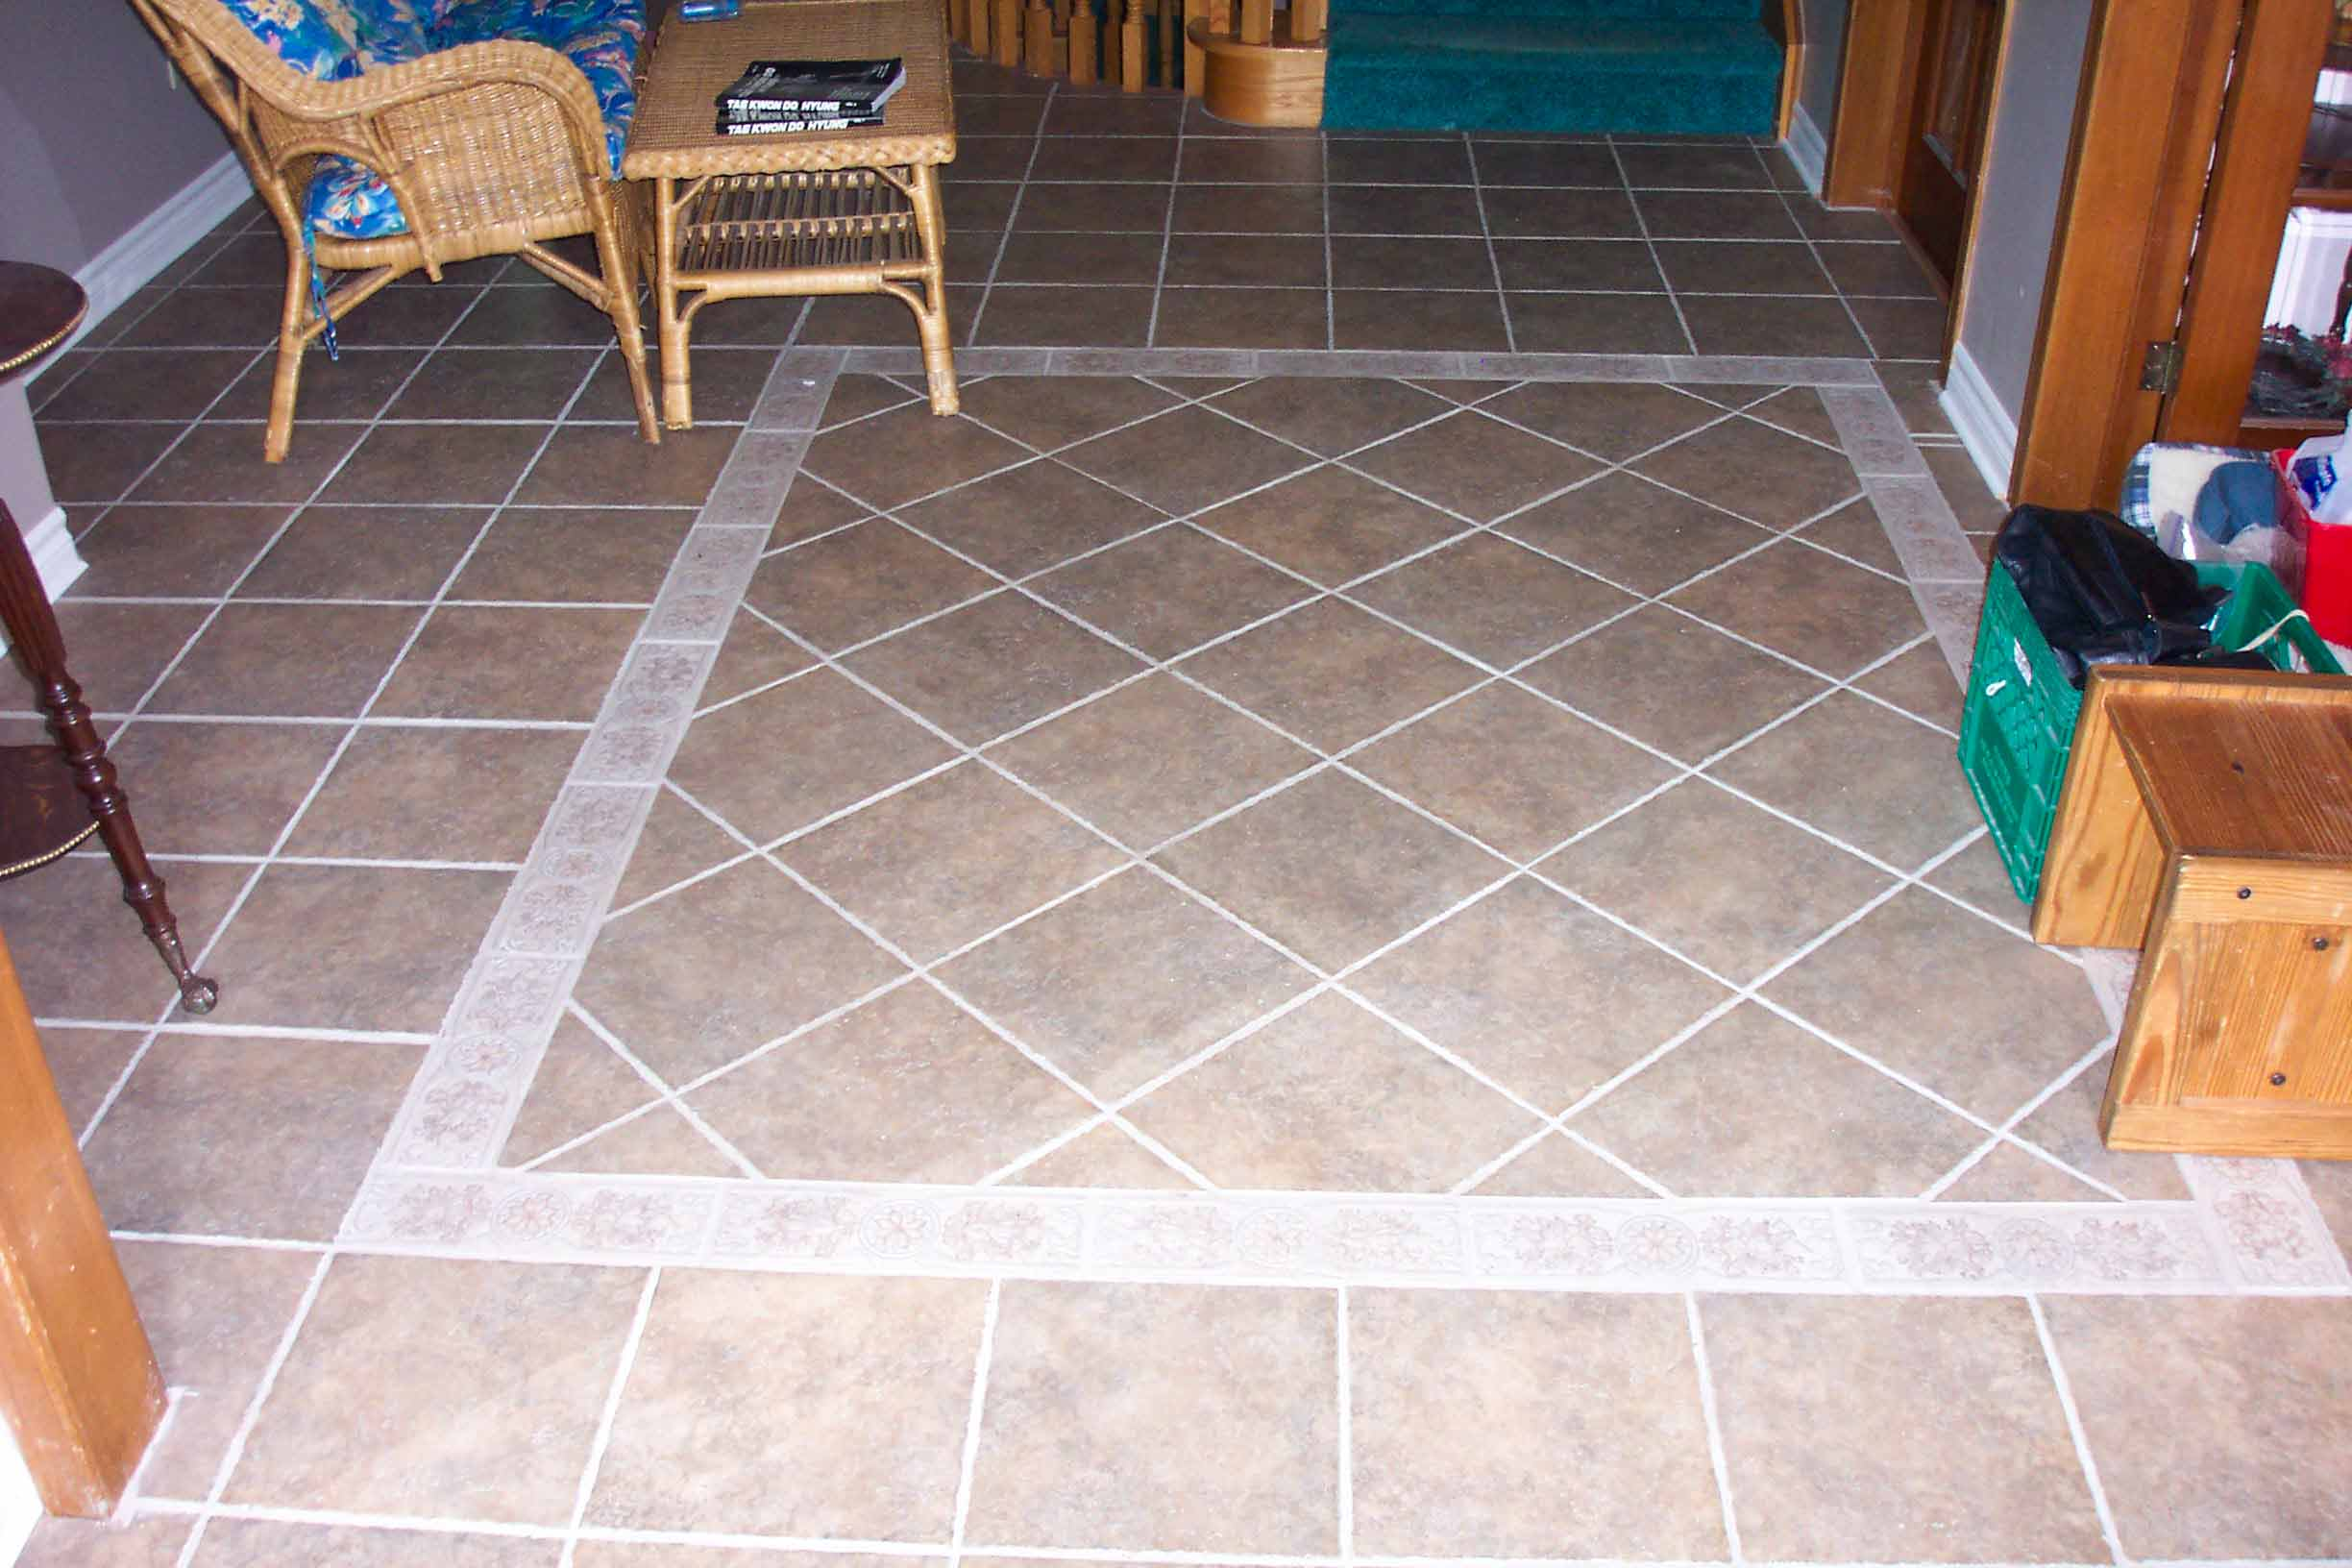 Floor patterns for tile free patterns for Kitchen floor ceramic tile design ideas